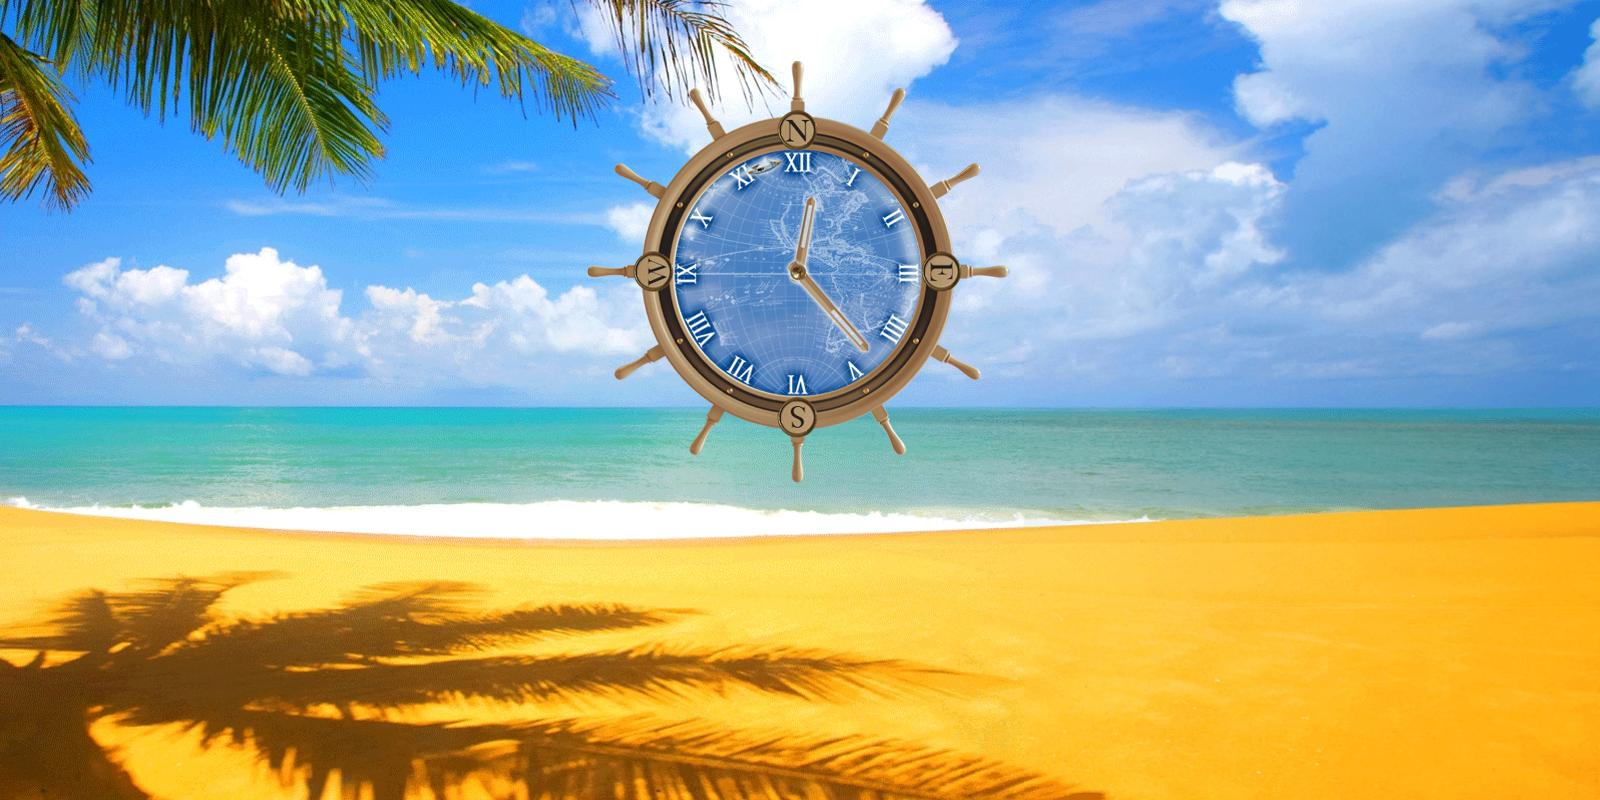 Summer Holidays Live Wallpaper- screenshot